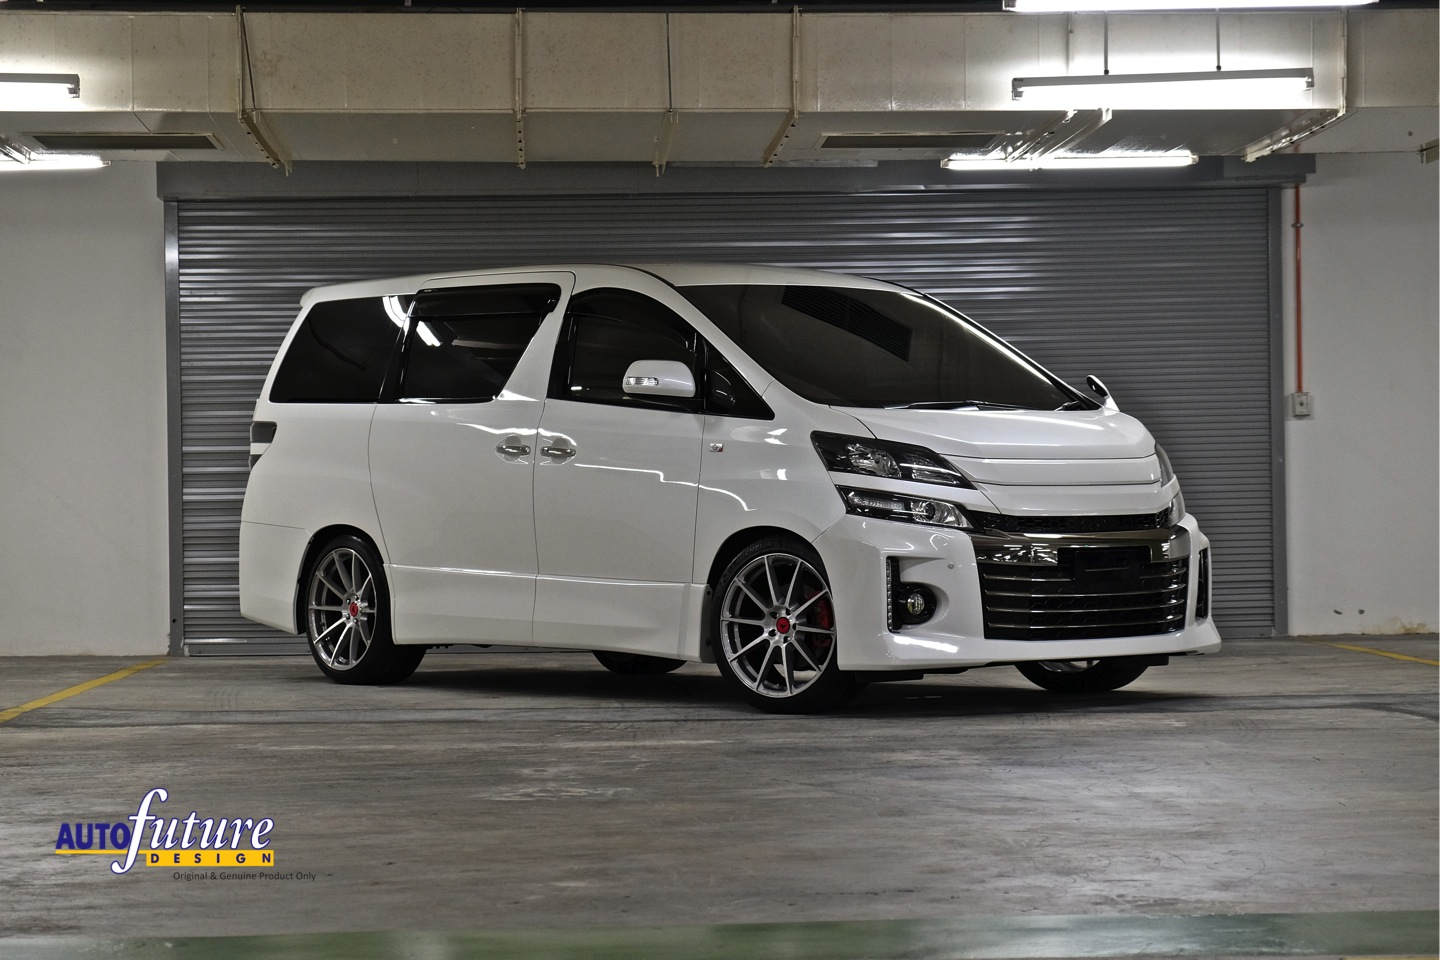 Toyota Vellfire Equipped With Vorsteiner V-FF 102 Wheels